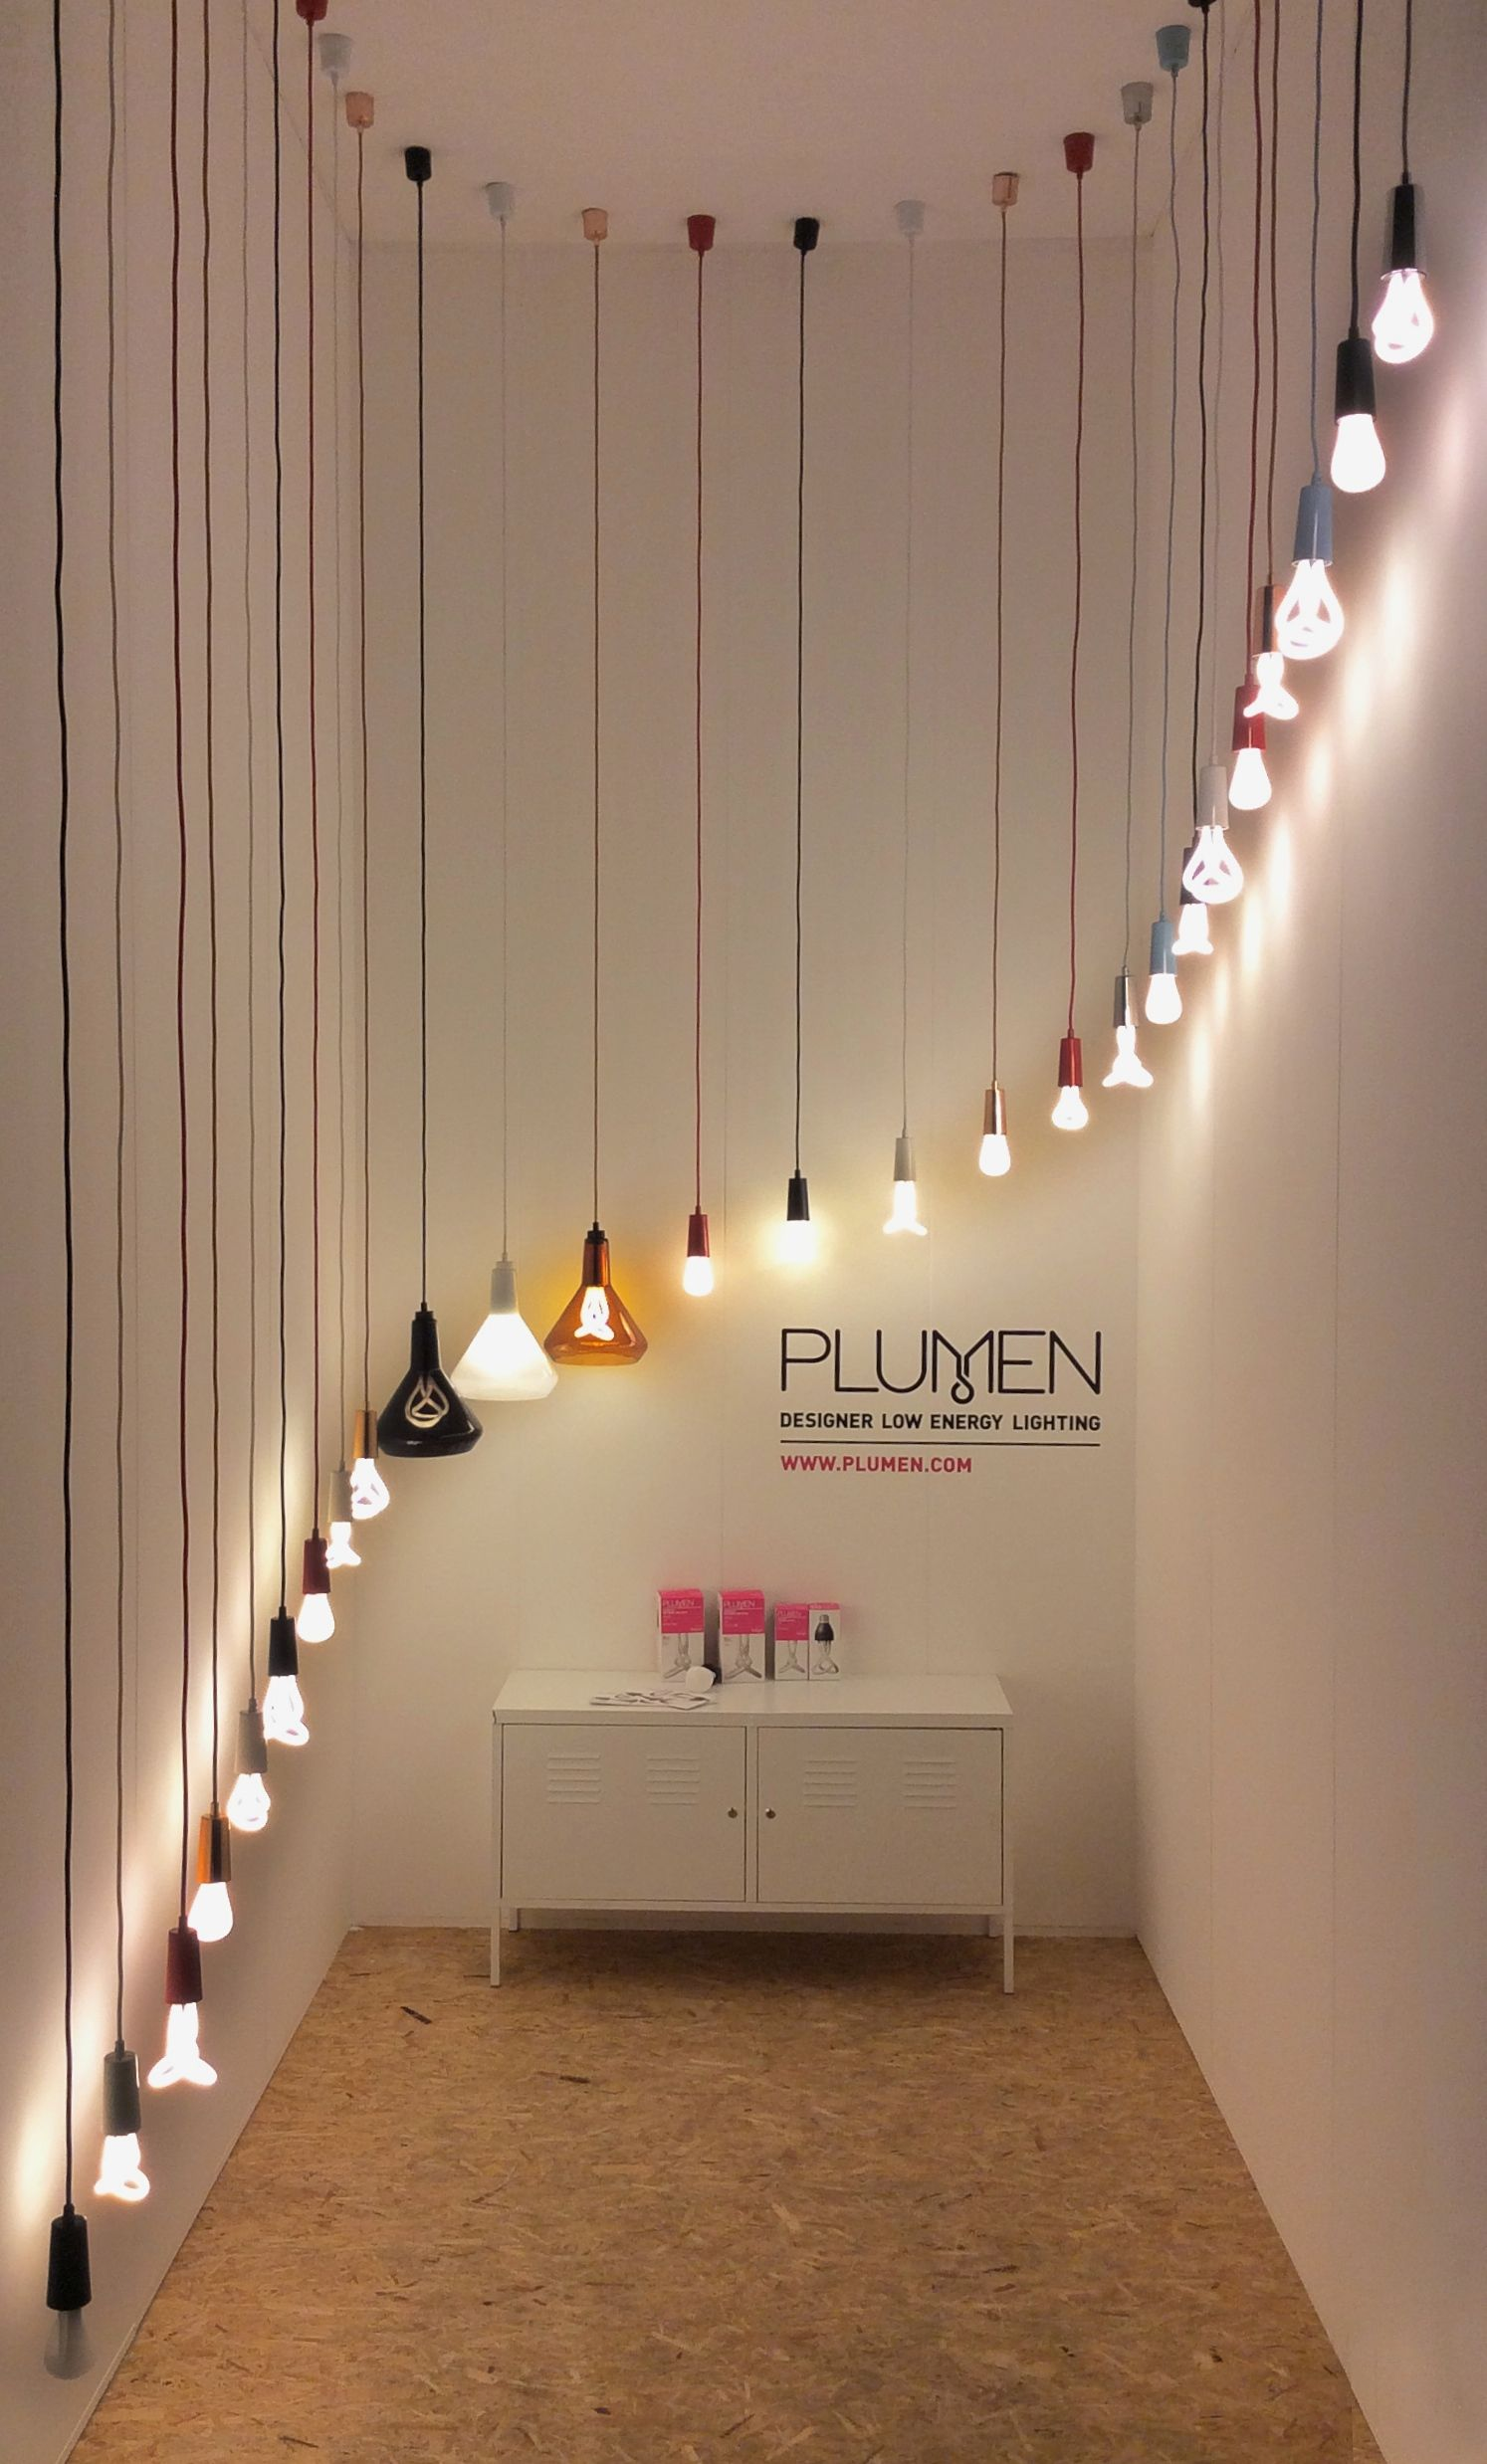 Plumen In 2014DecorateDiseño Frankfurt LightBuilding At De xoedCBWr